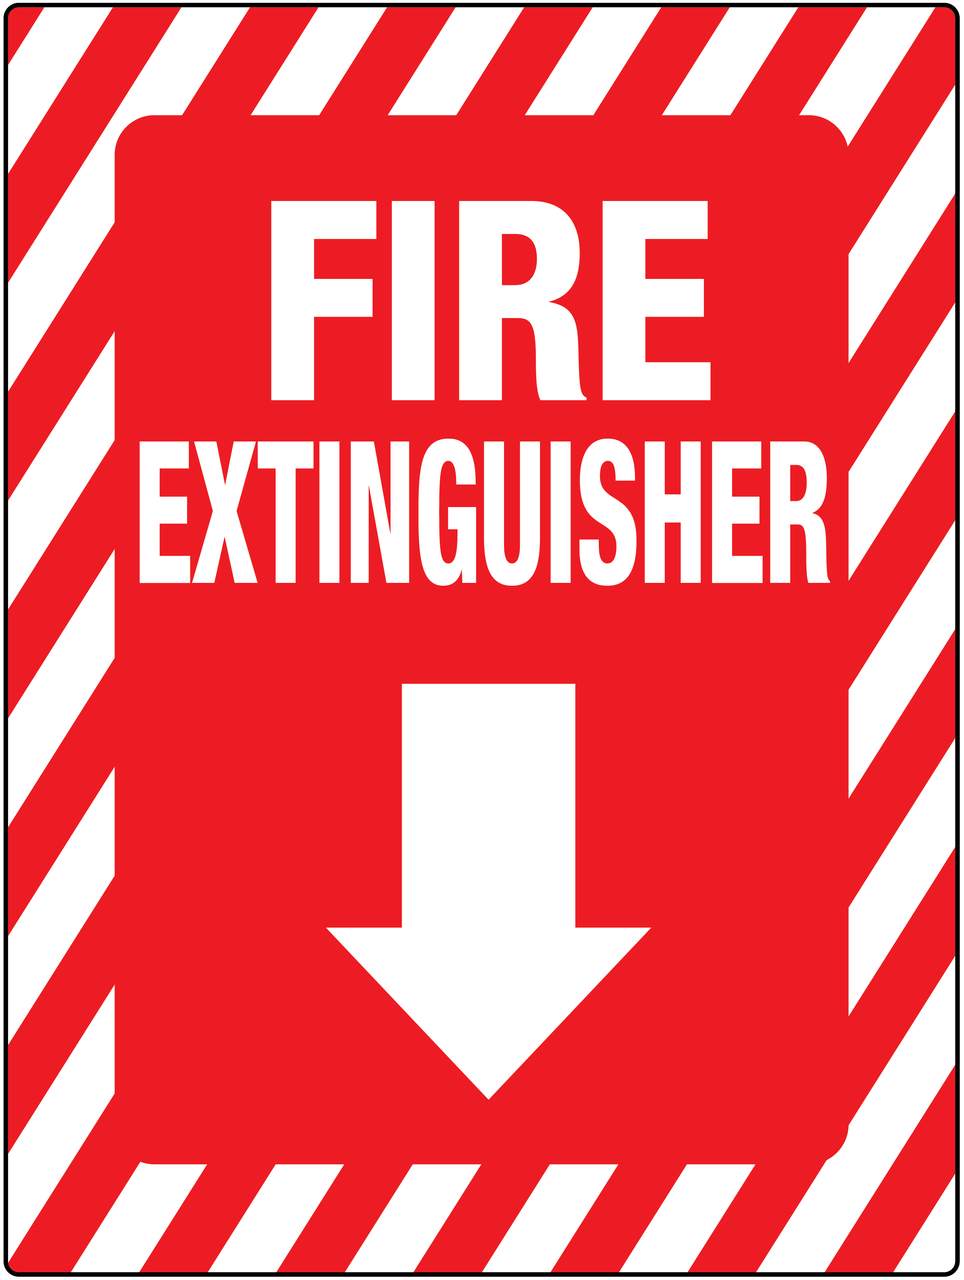 Fire Extinguisher Below Wall Sign Creative Safety Supply